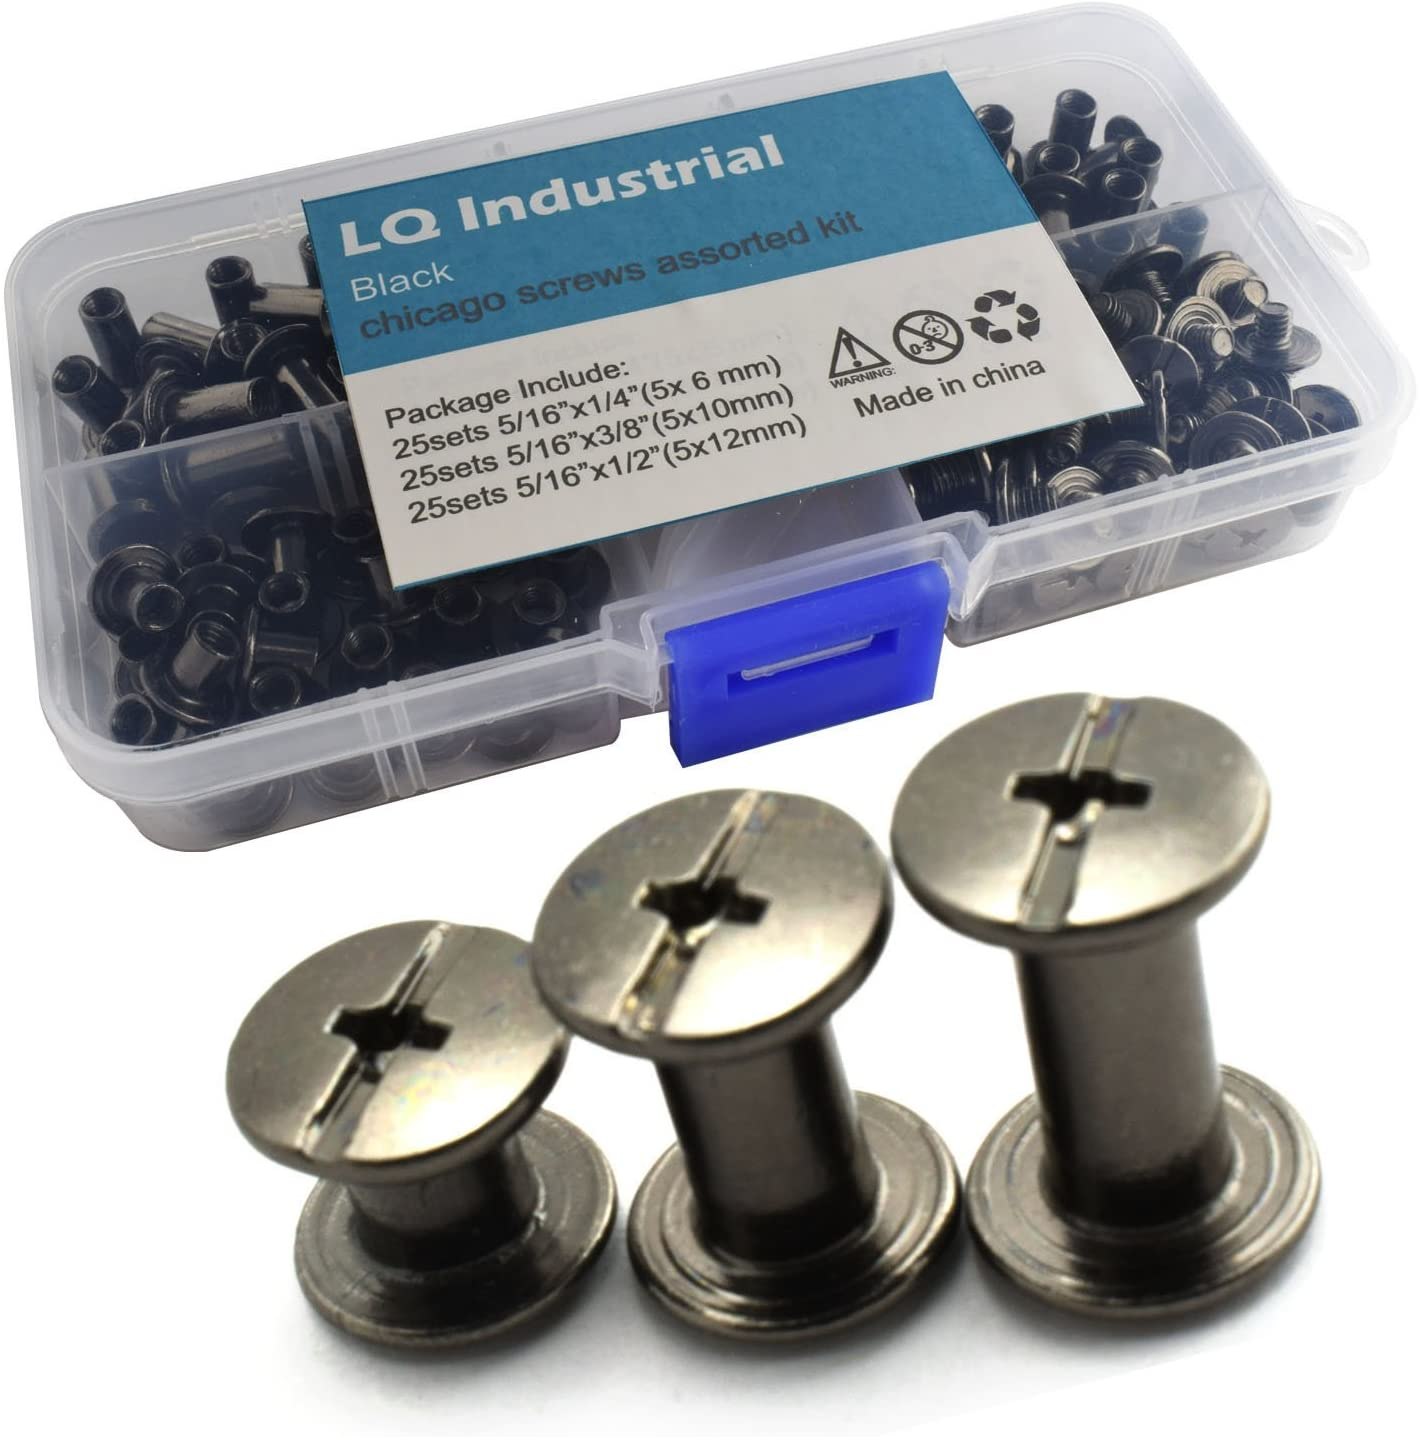 LQ Industrial 75 Sets Black M5 Chicago Screw Assorted Kit Slotted Phillip Head Binding Screws Rivet Assembly Bolt Nail Rivet for Book Binding DIY Leather Craft M5x6 M5x10 M5x12 : Arts, Crafts & Sewing